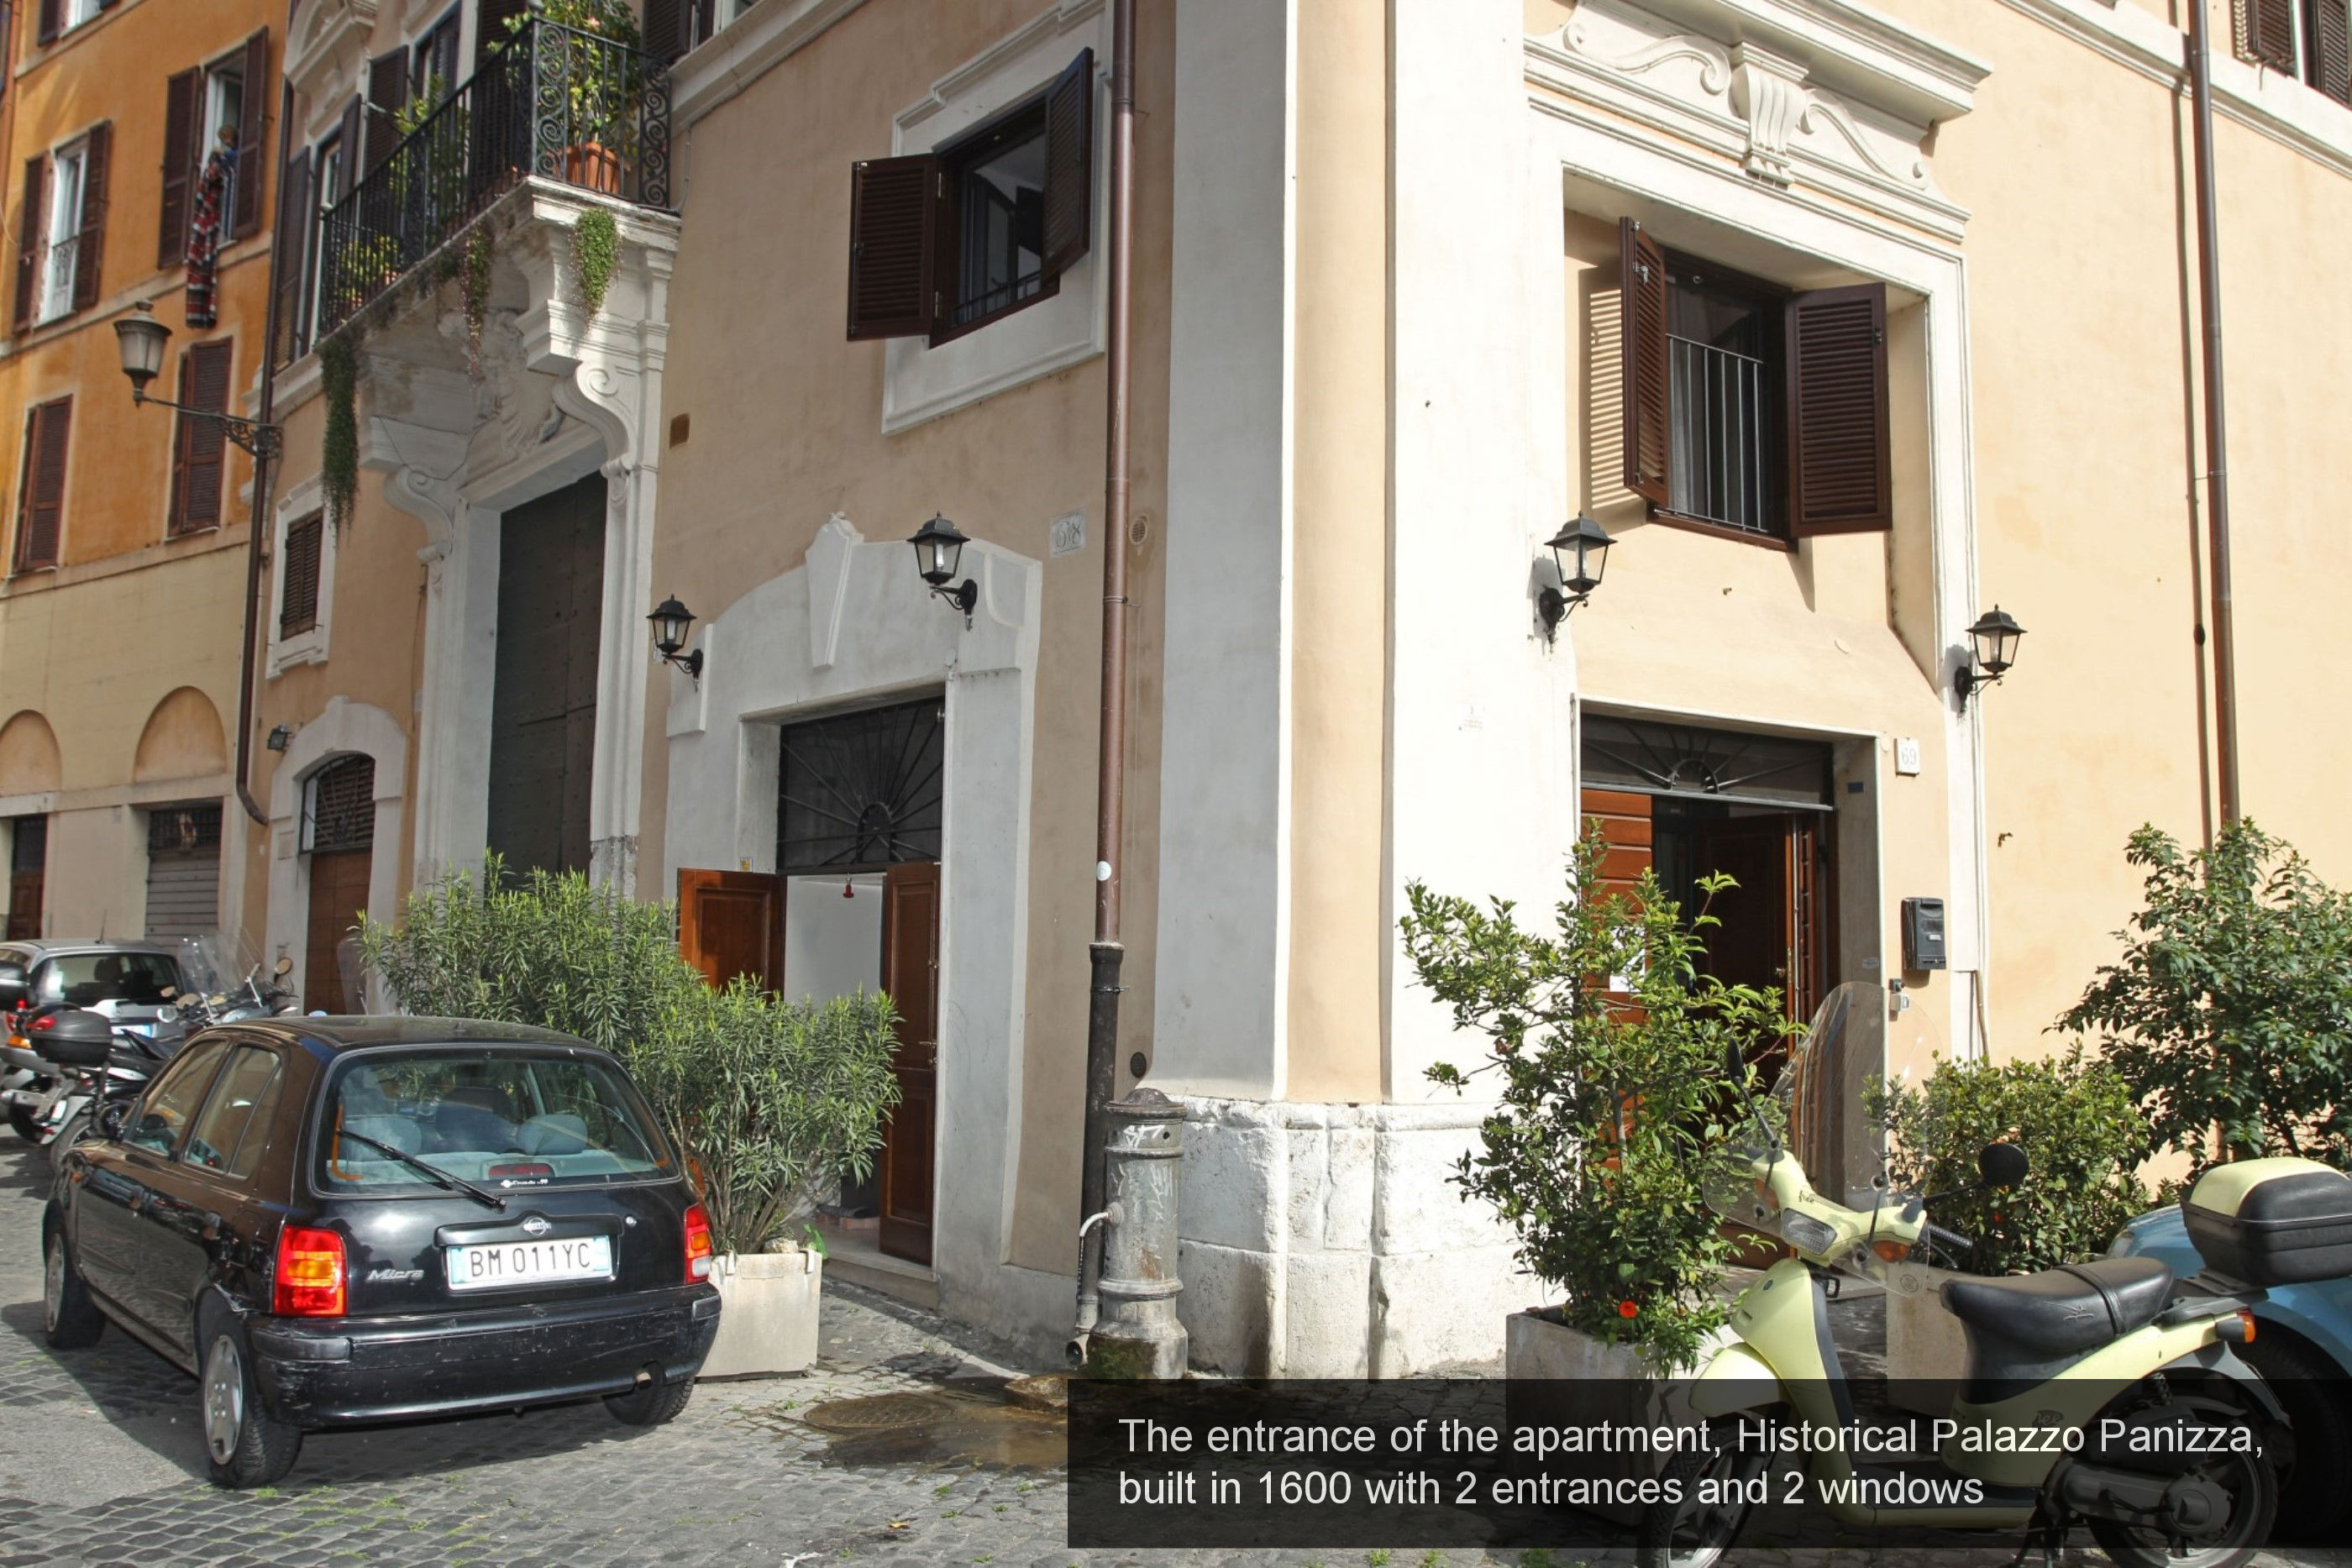 21) The entrance of the apartment, Historical Palazzo Panizza, built in ...